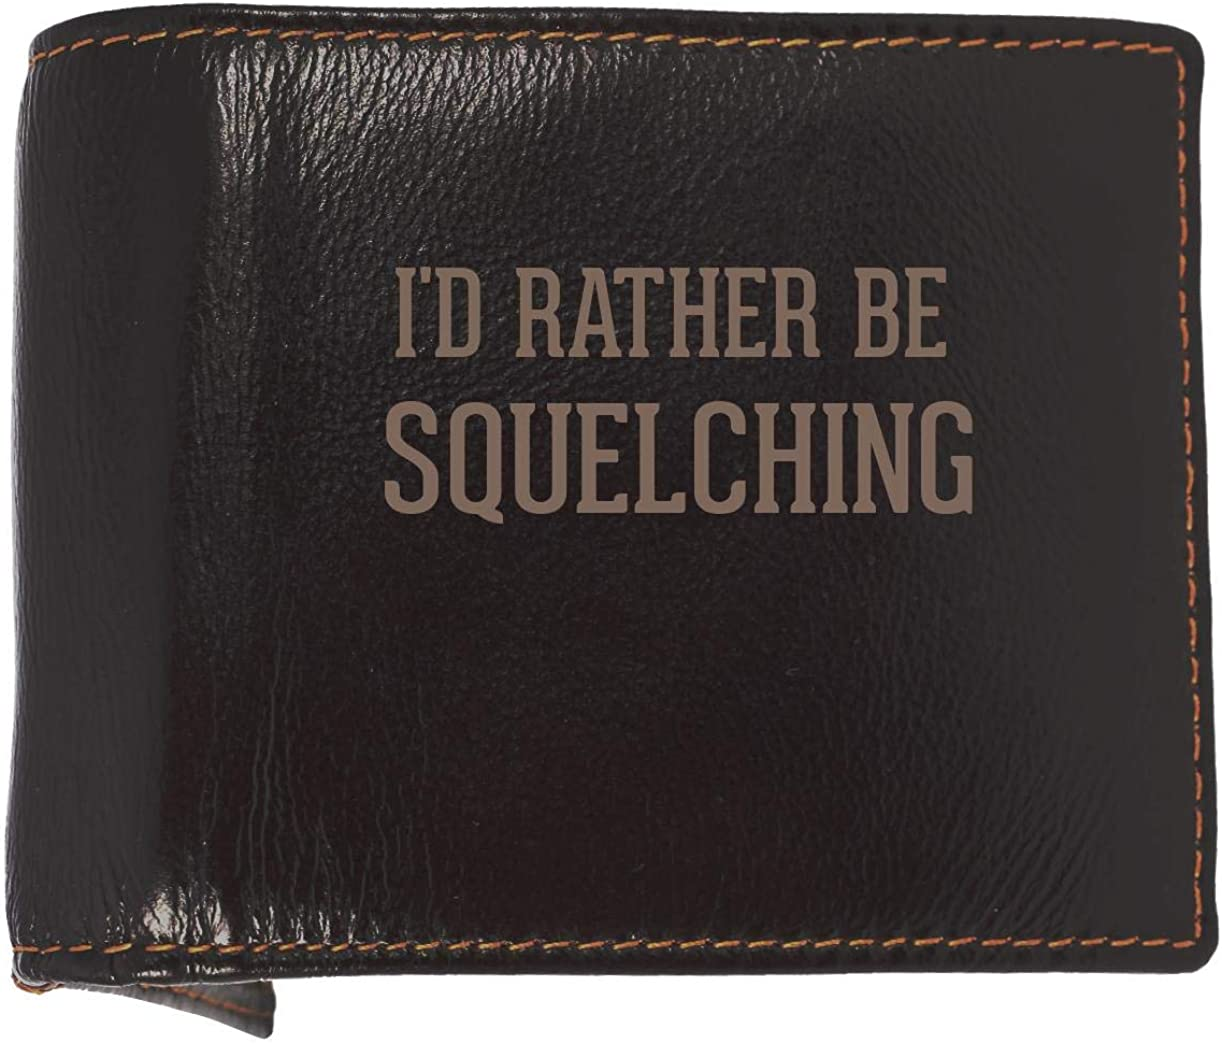 I'd Rather Be SQUELCHING - Soft Cowhide Genuine Engraved Bifold Leather Wallet 61W2Ue1EUIL